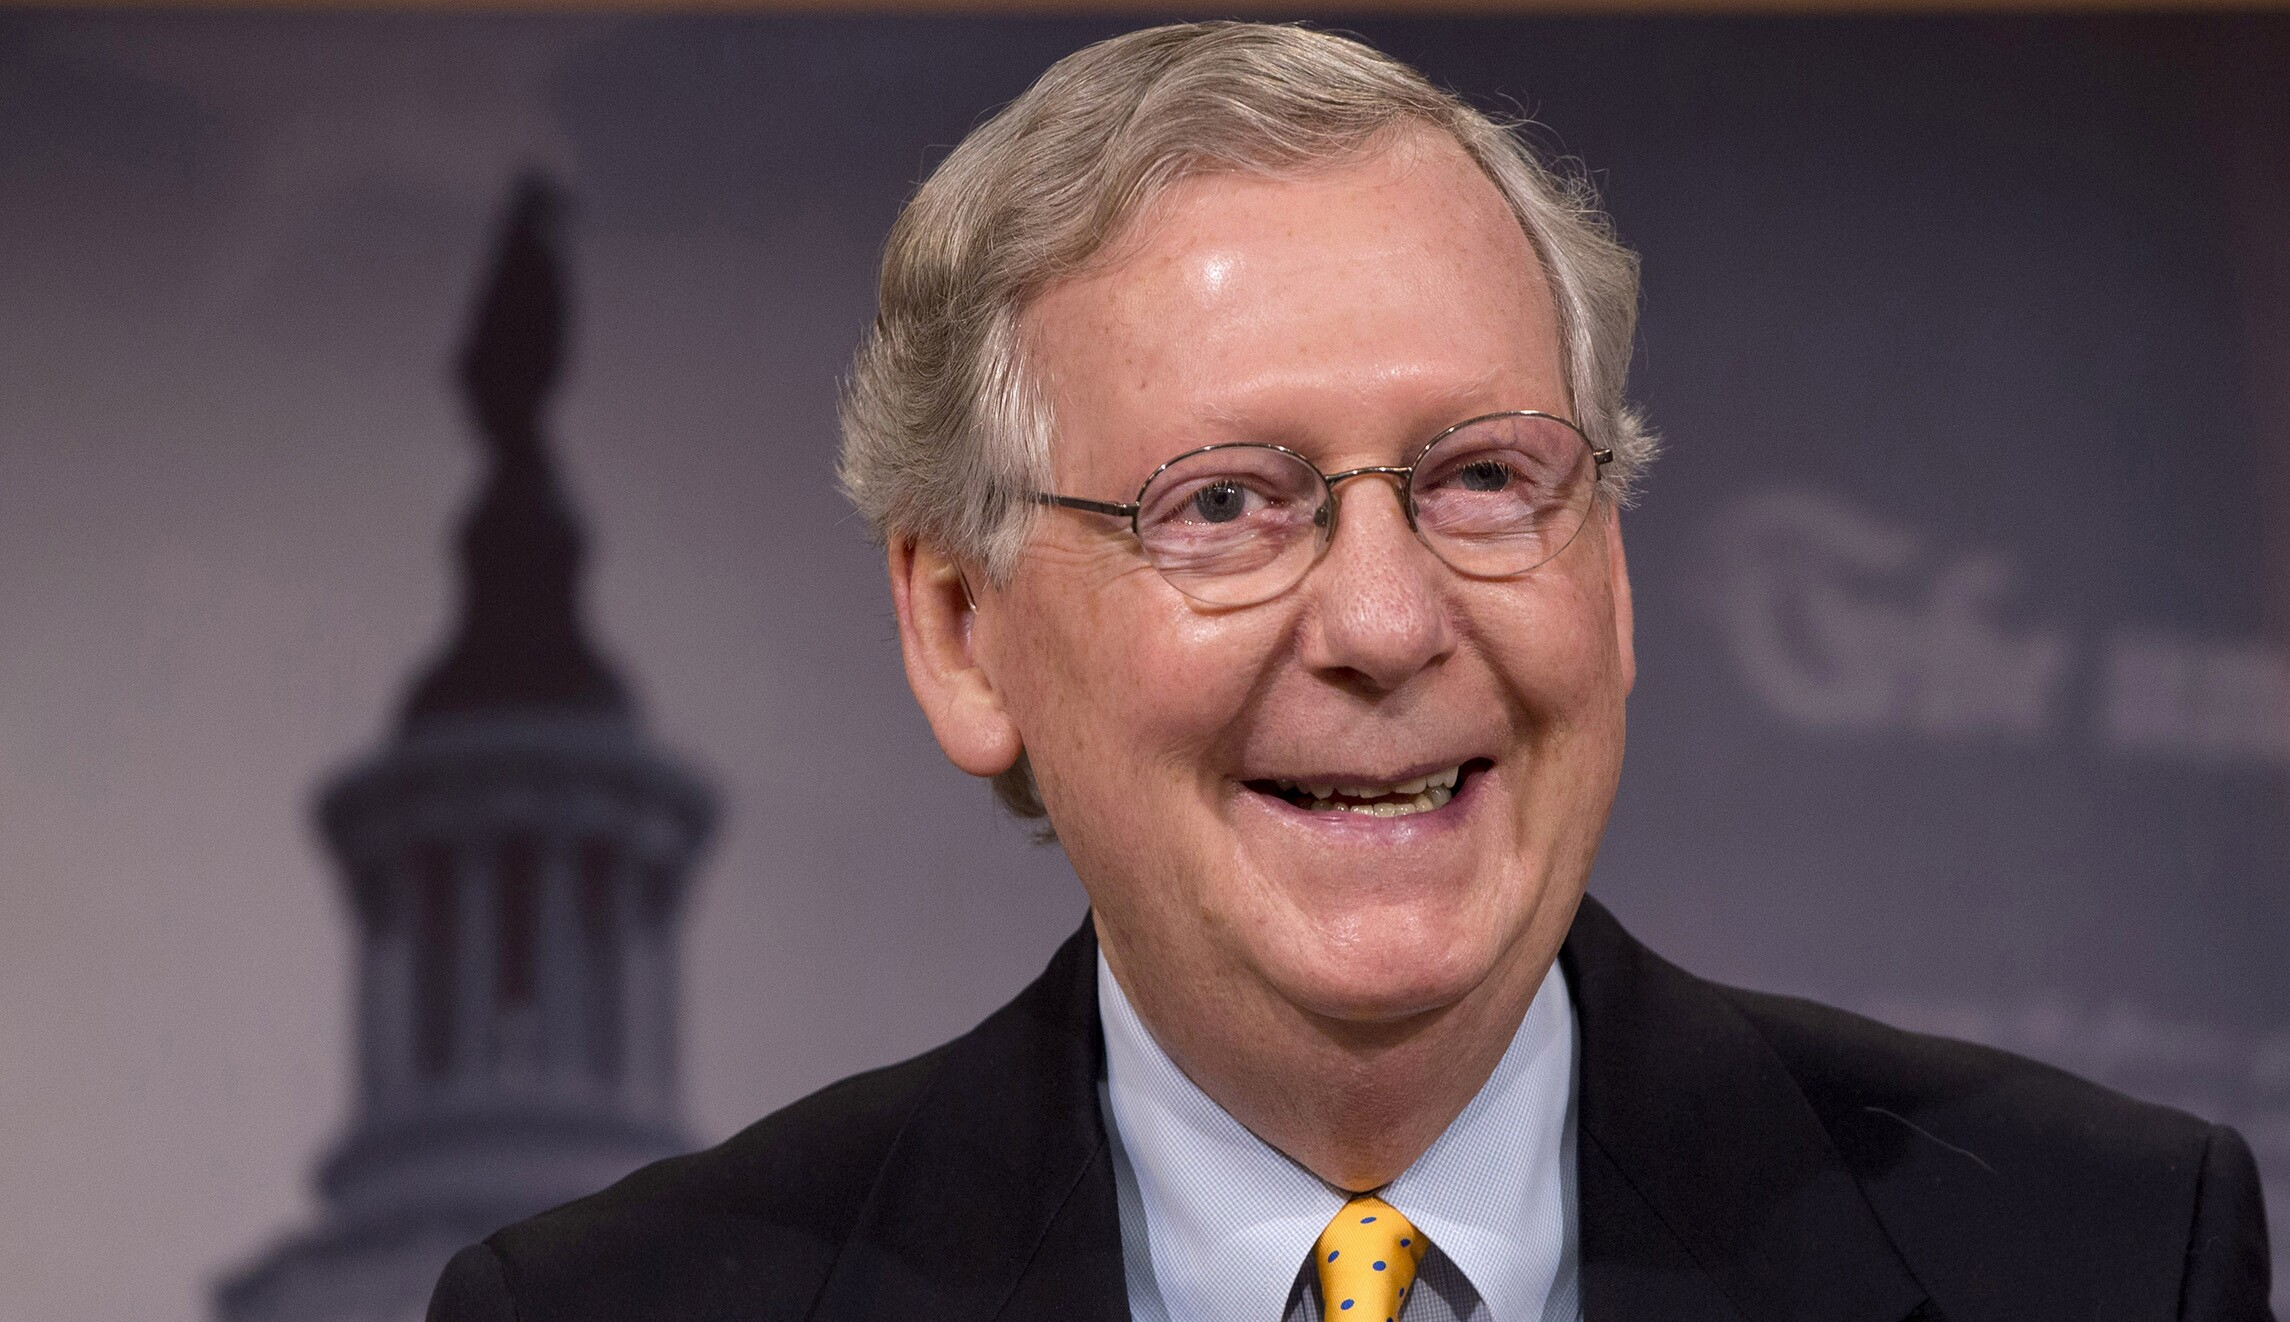 McConnell has the votes to block Democrats' witness demands in Trump impeachment trial…